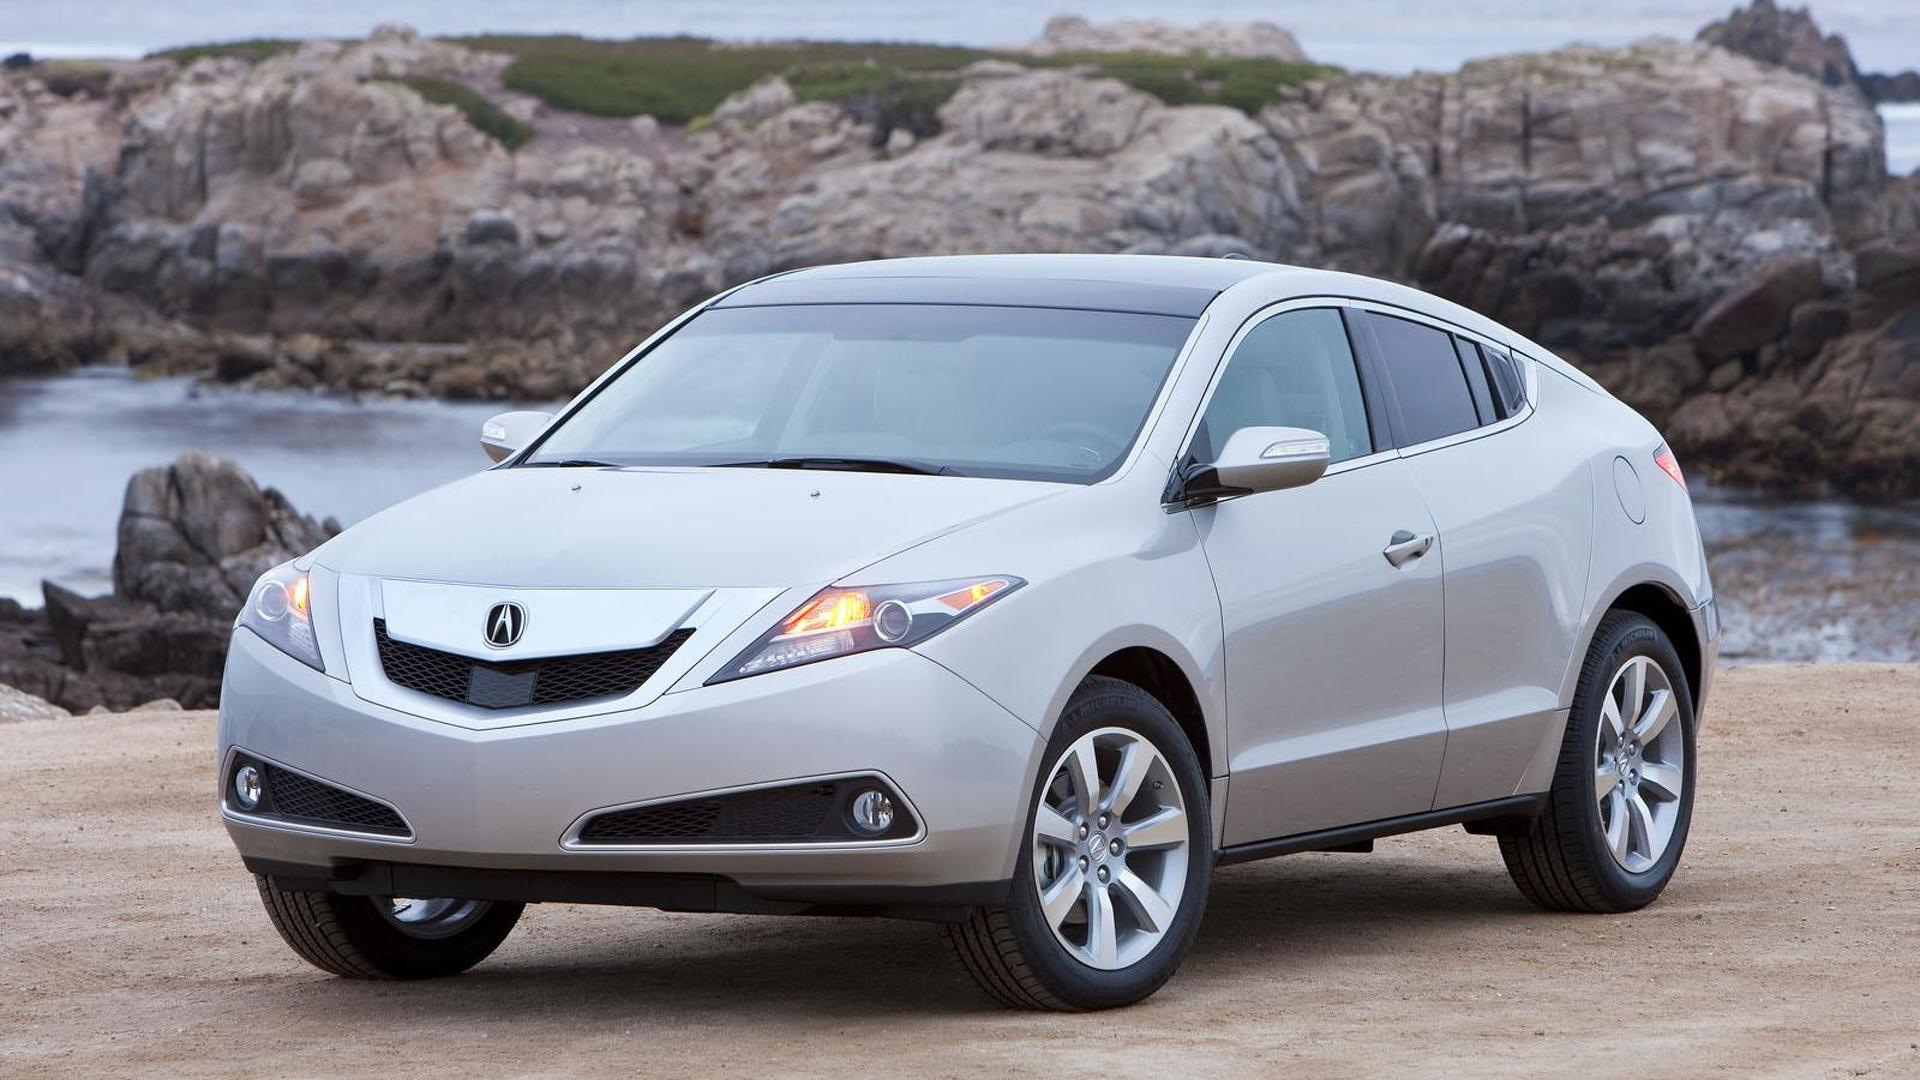 2013 Acura ZDX facelift announced